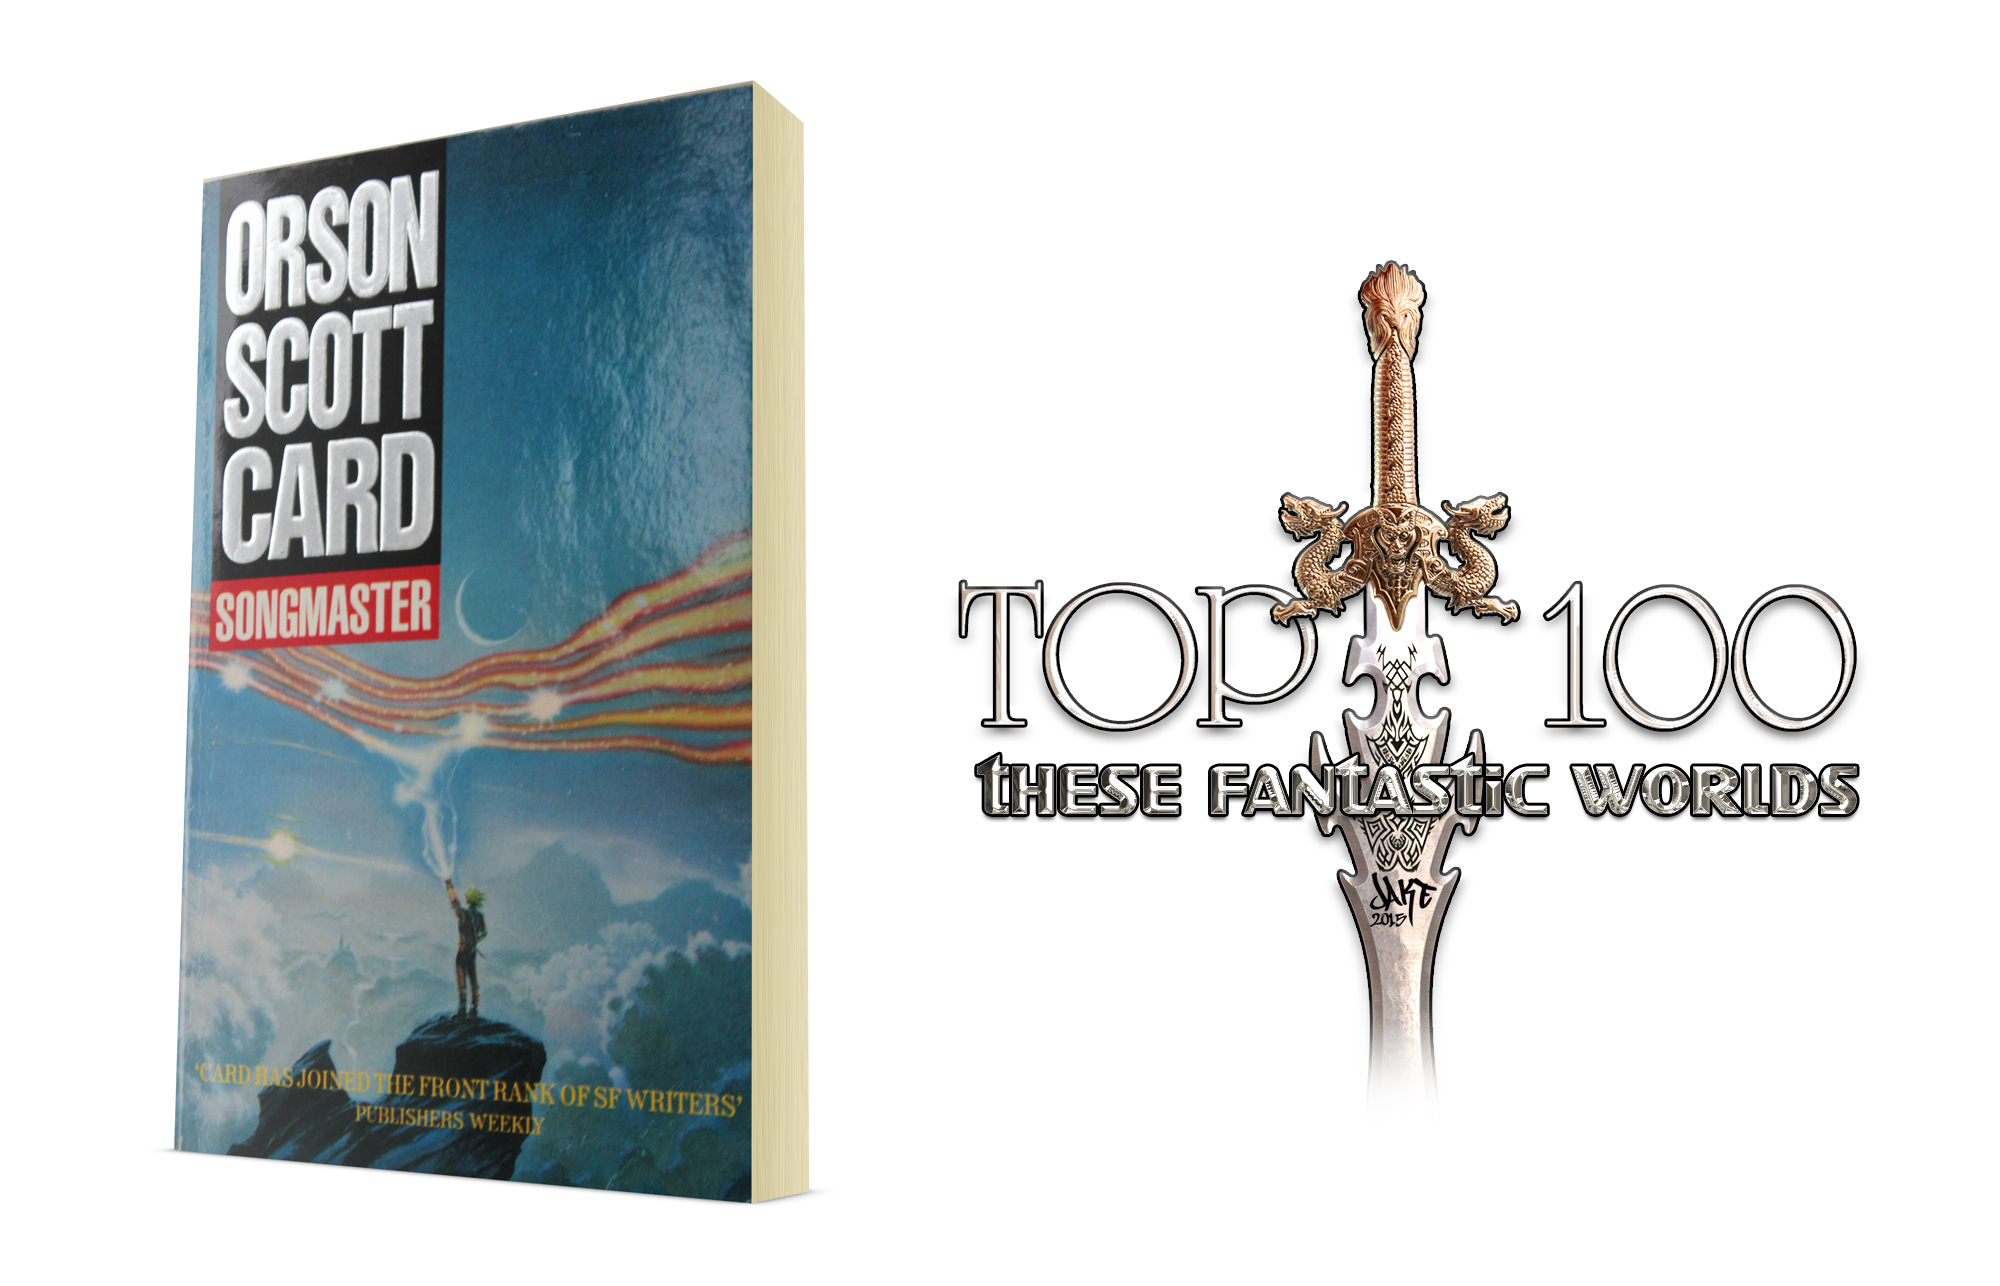 Orson Scott Card, Songmaster, 100 top SF and F books | These Fantastic Worlds